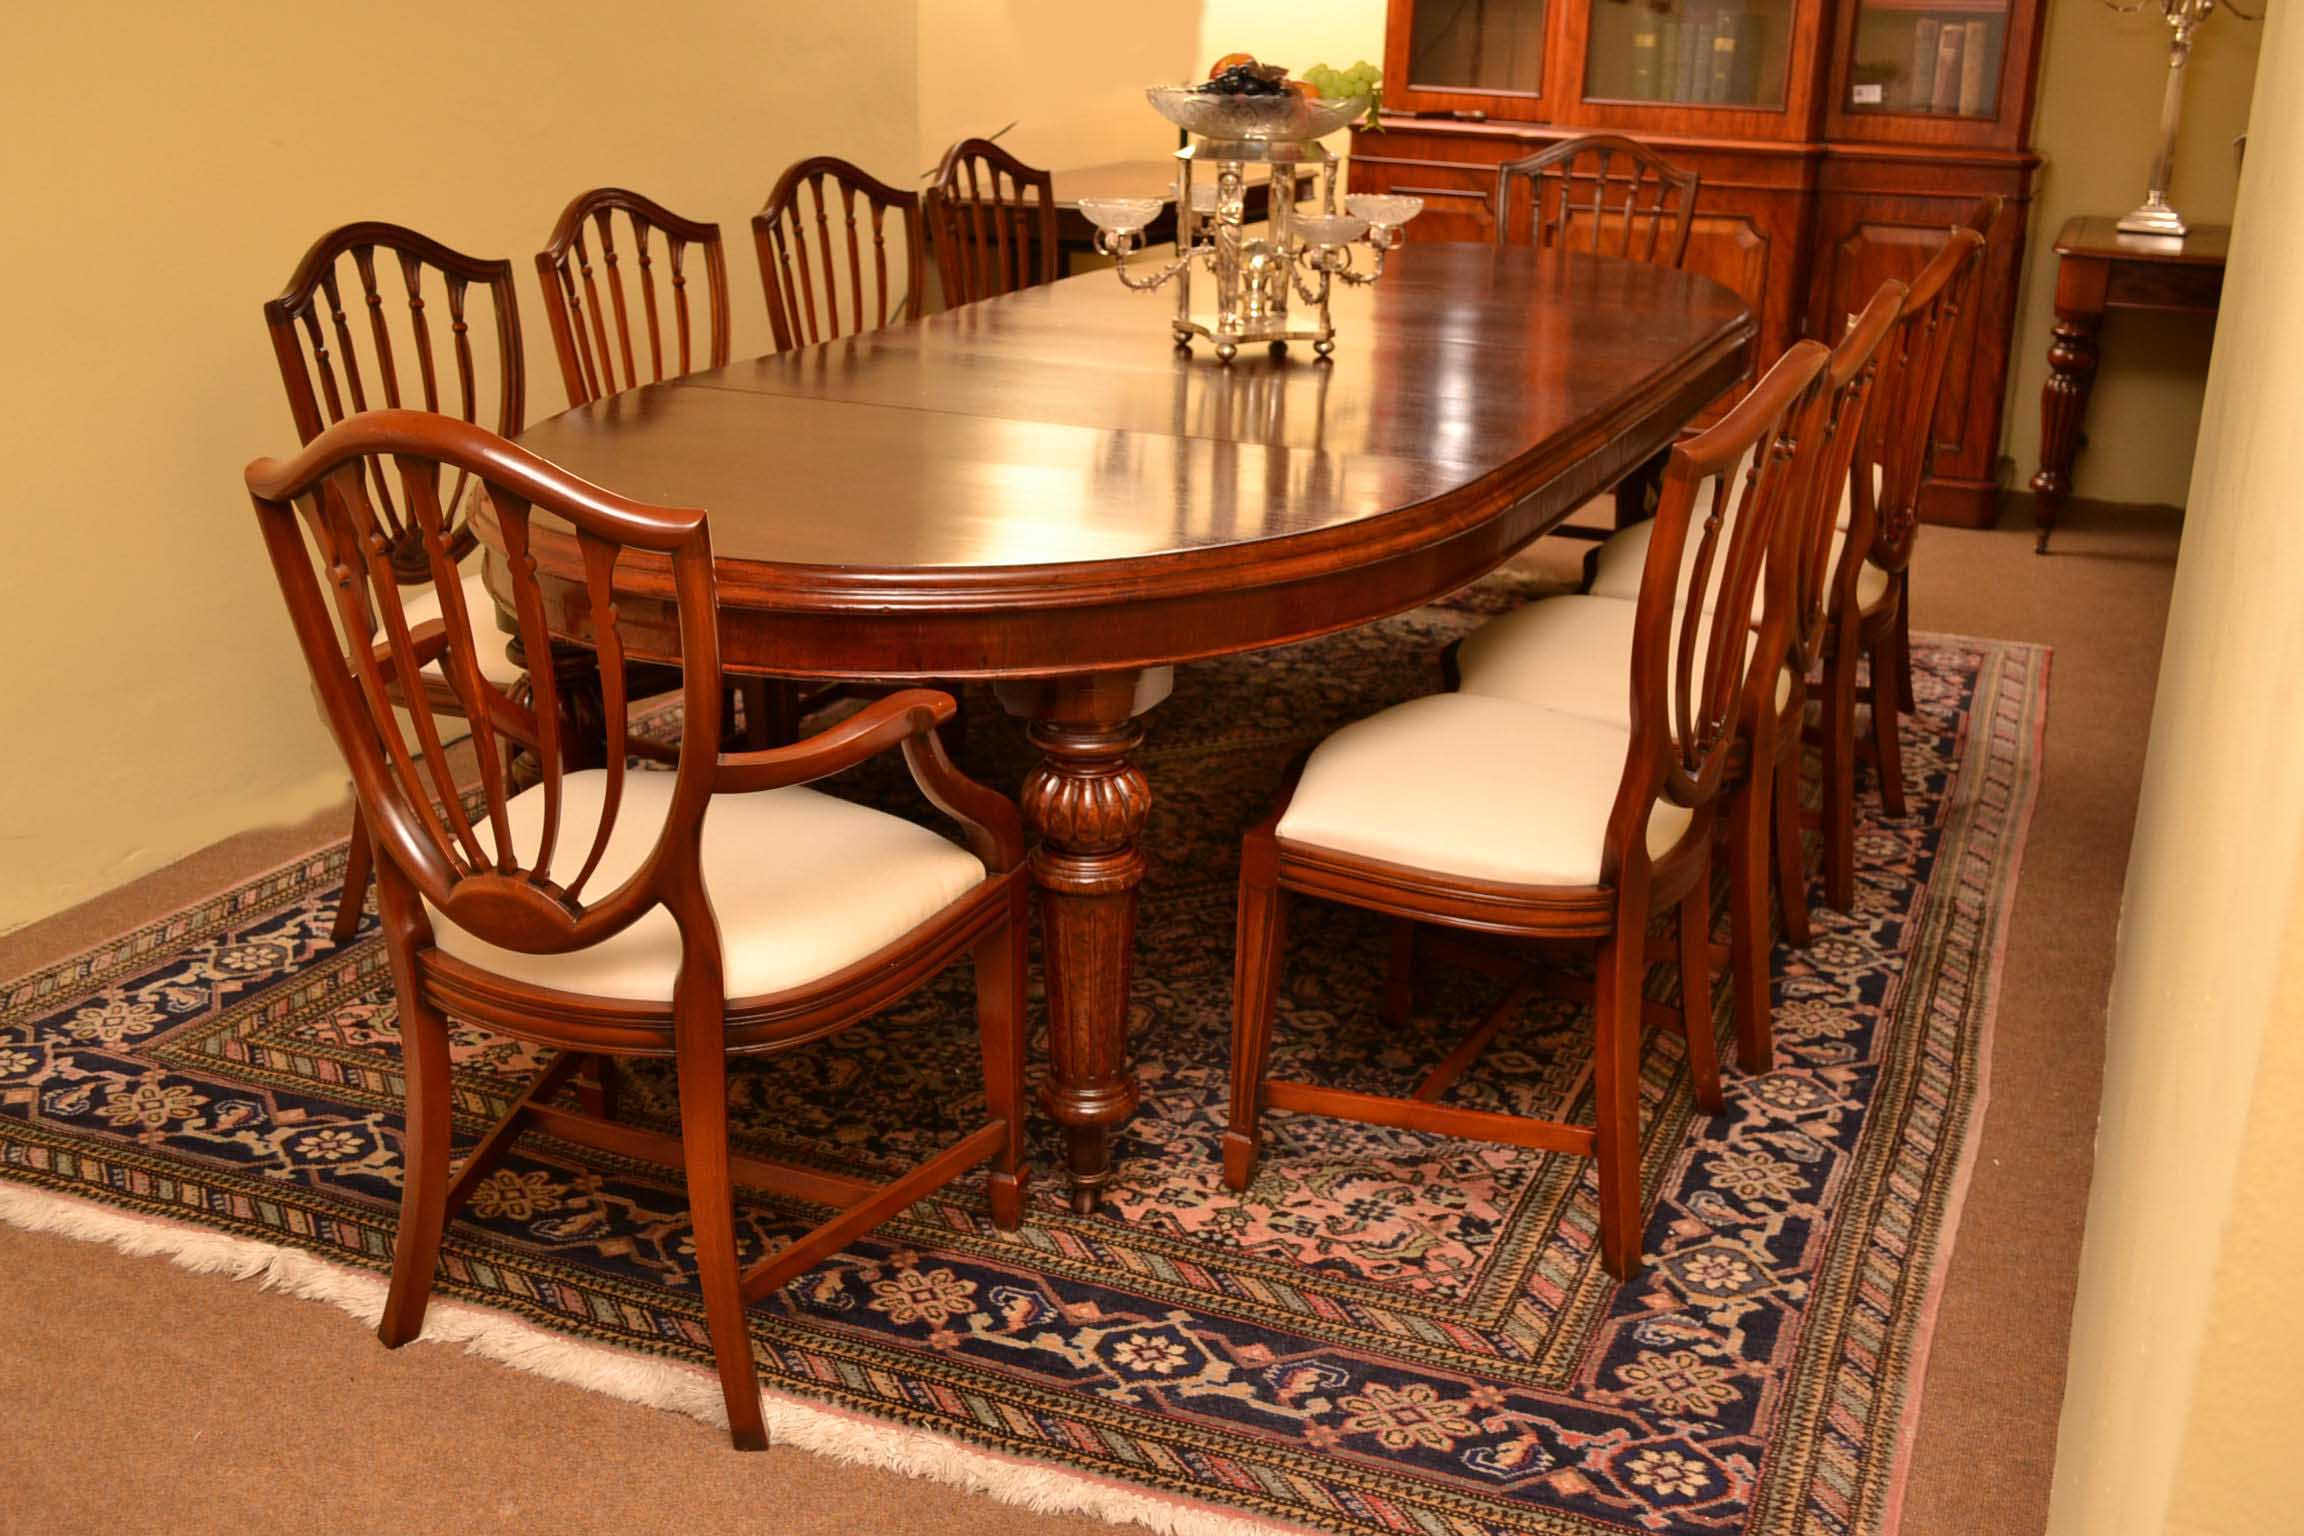 Antique victorian dining table 10 chairs hepplewhite for Antique dining room tables